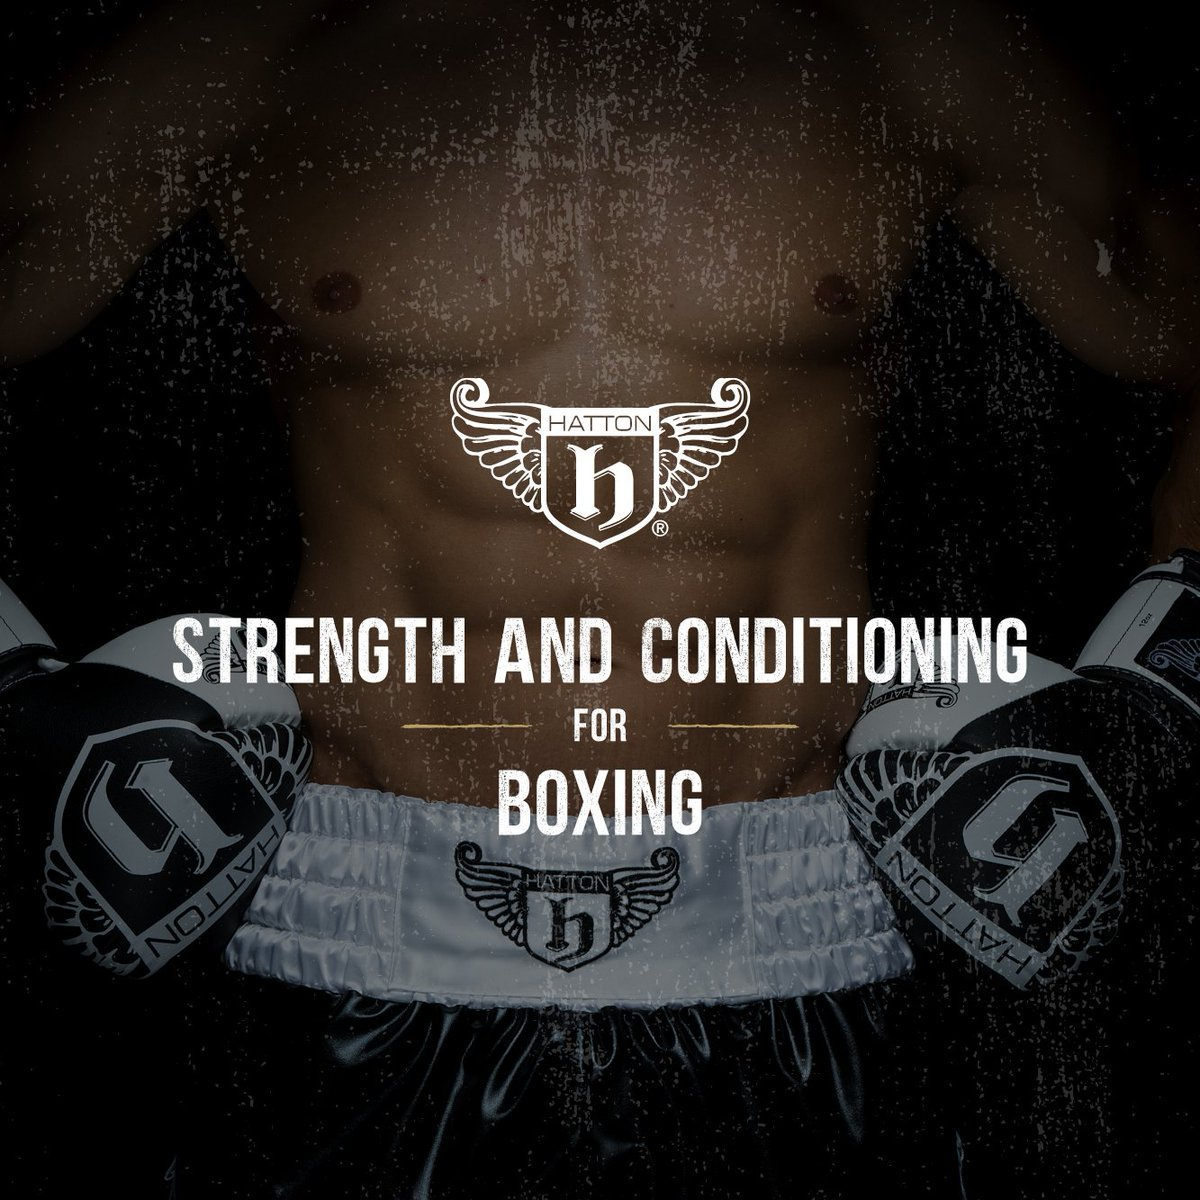 Were in Manchester + London this year with our Strength & Conditioning course. We have designed the programme to deliver results + improve your understanding and applicability of technique. + much more! Places will fill fast! bit.ly/2m8kuLN